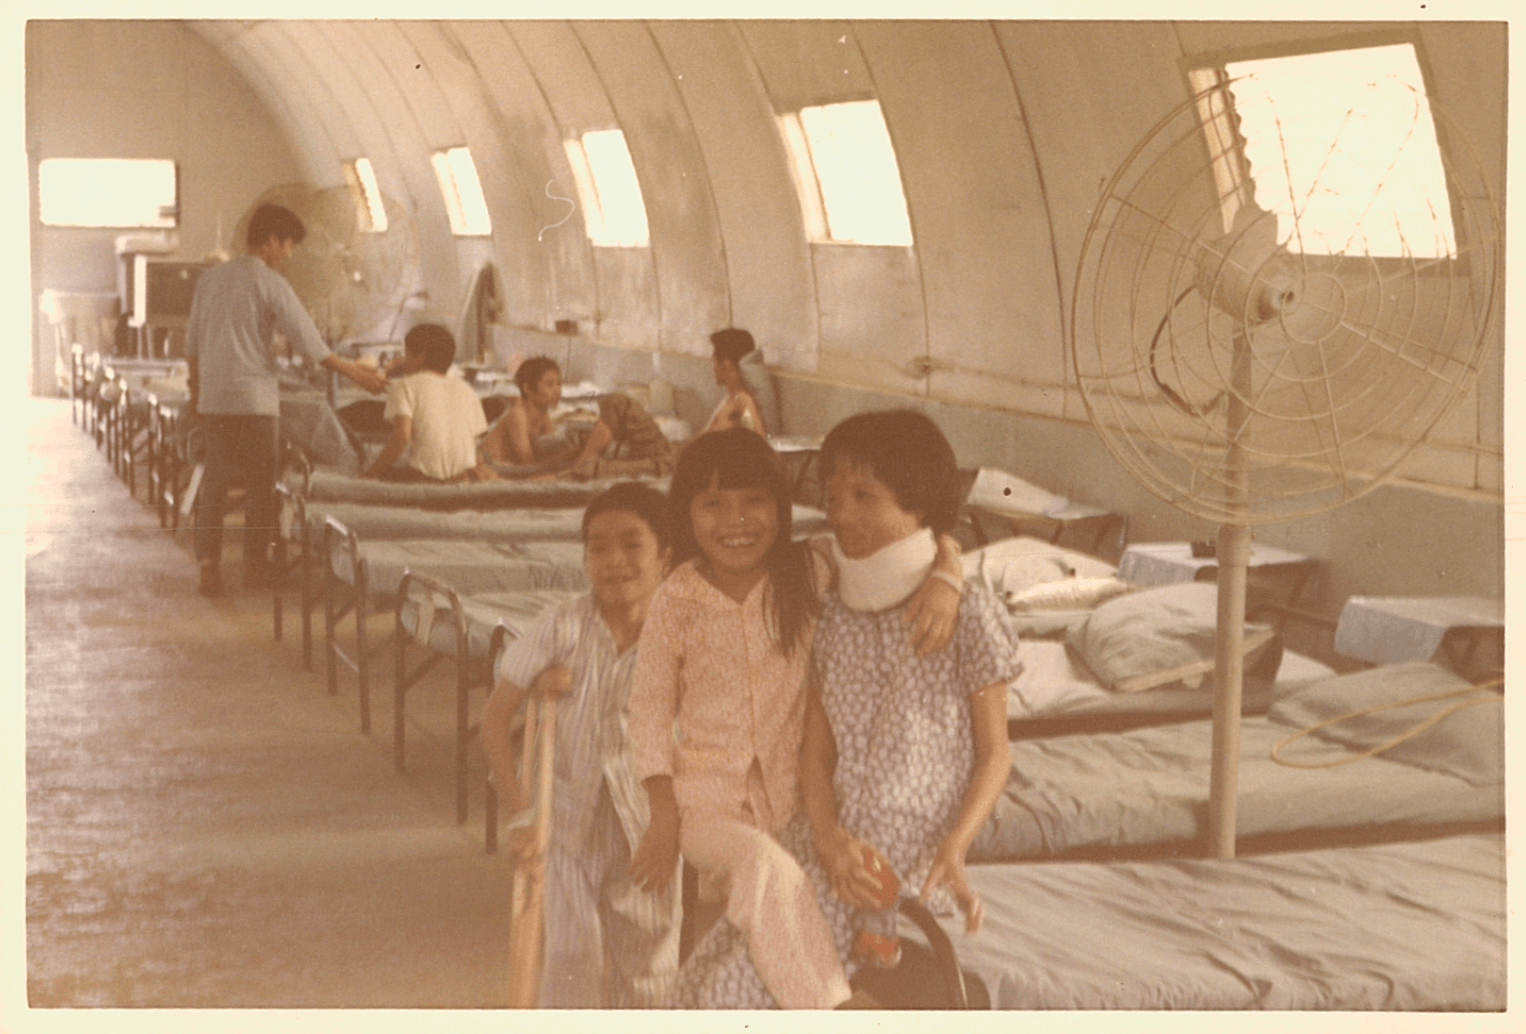 Two young Asian girls smiling from their bunks in the ward.